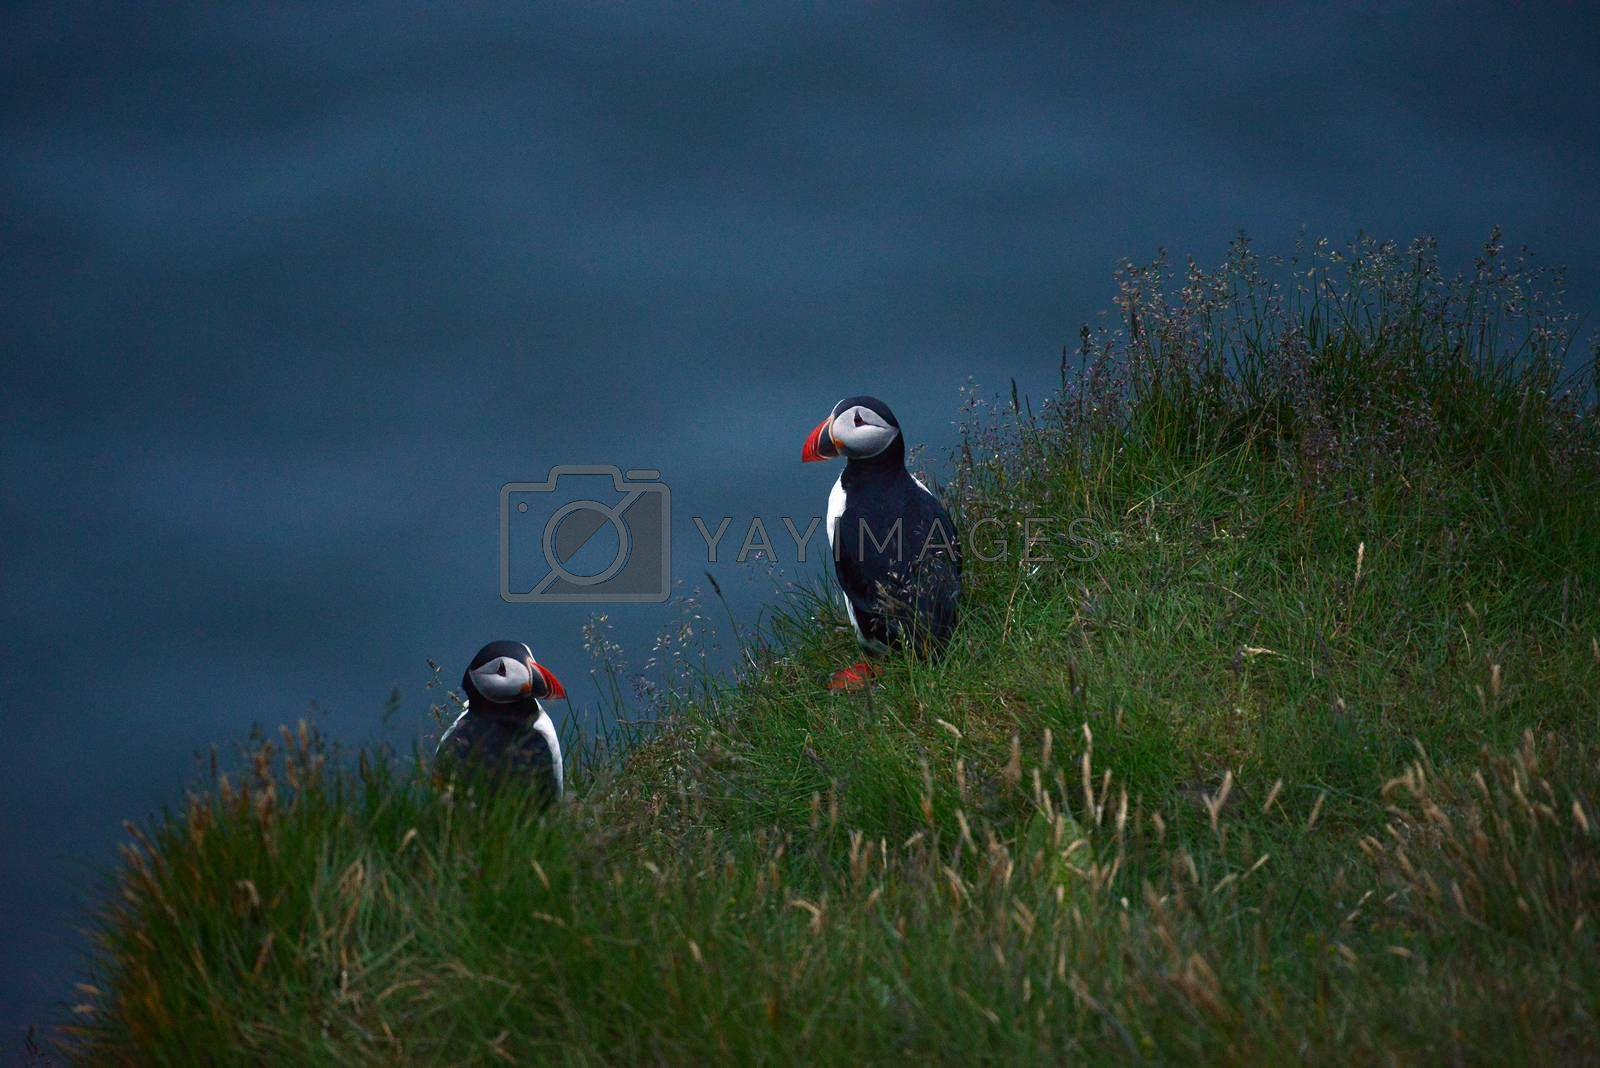 Royalty free image of Puffin colony at Dyrholaey, Iceland  by porbital